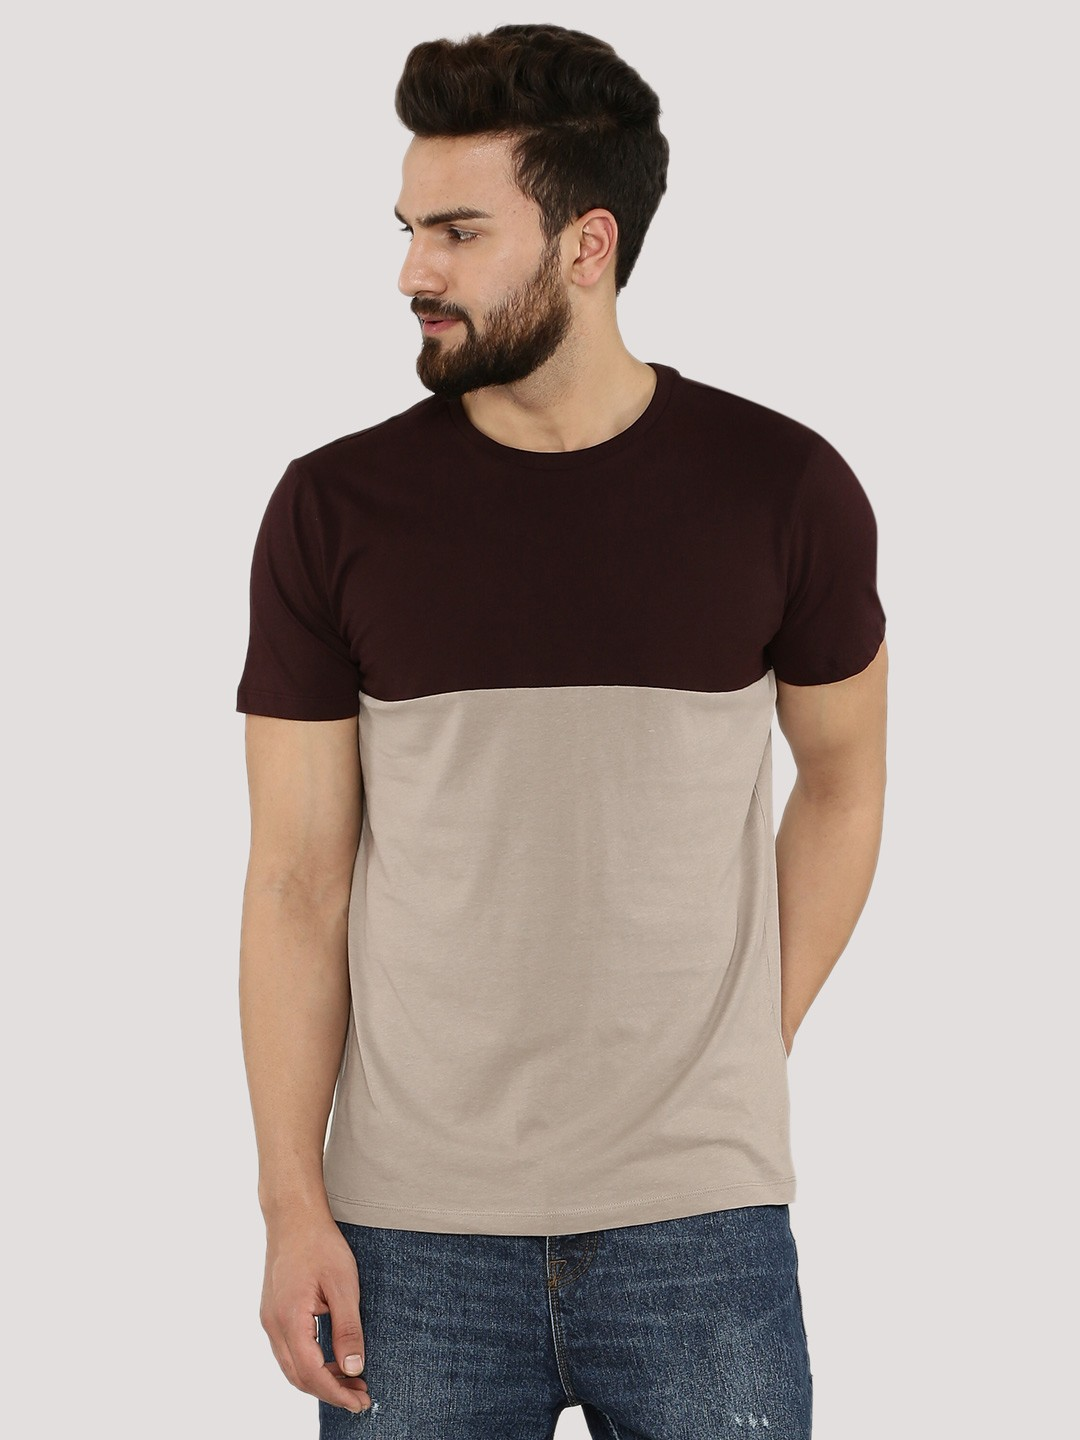 Buy NEW LOOK Colour Blocked T-Shirt For Men - Men's Purple/Red T ...